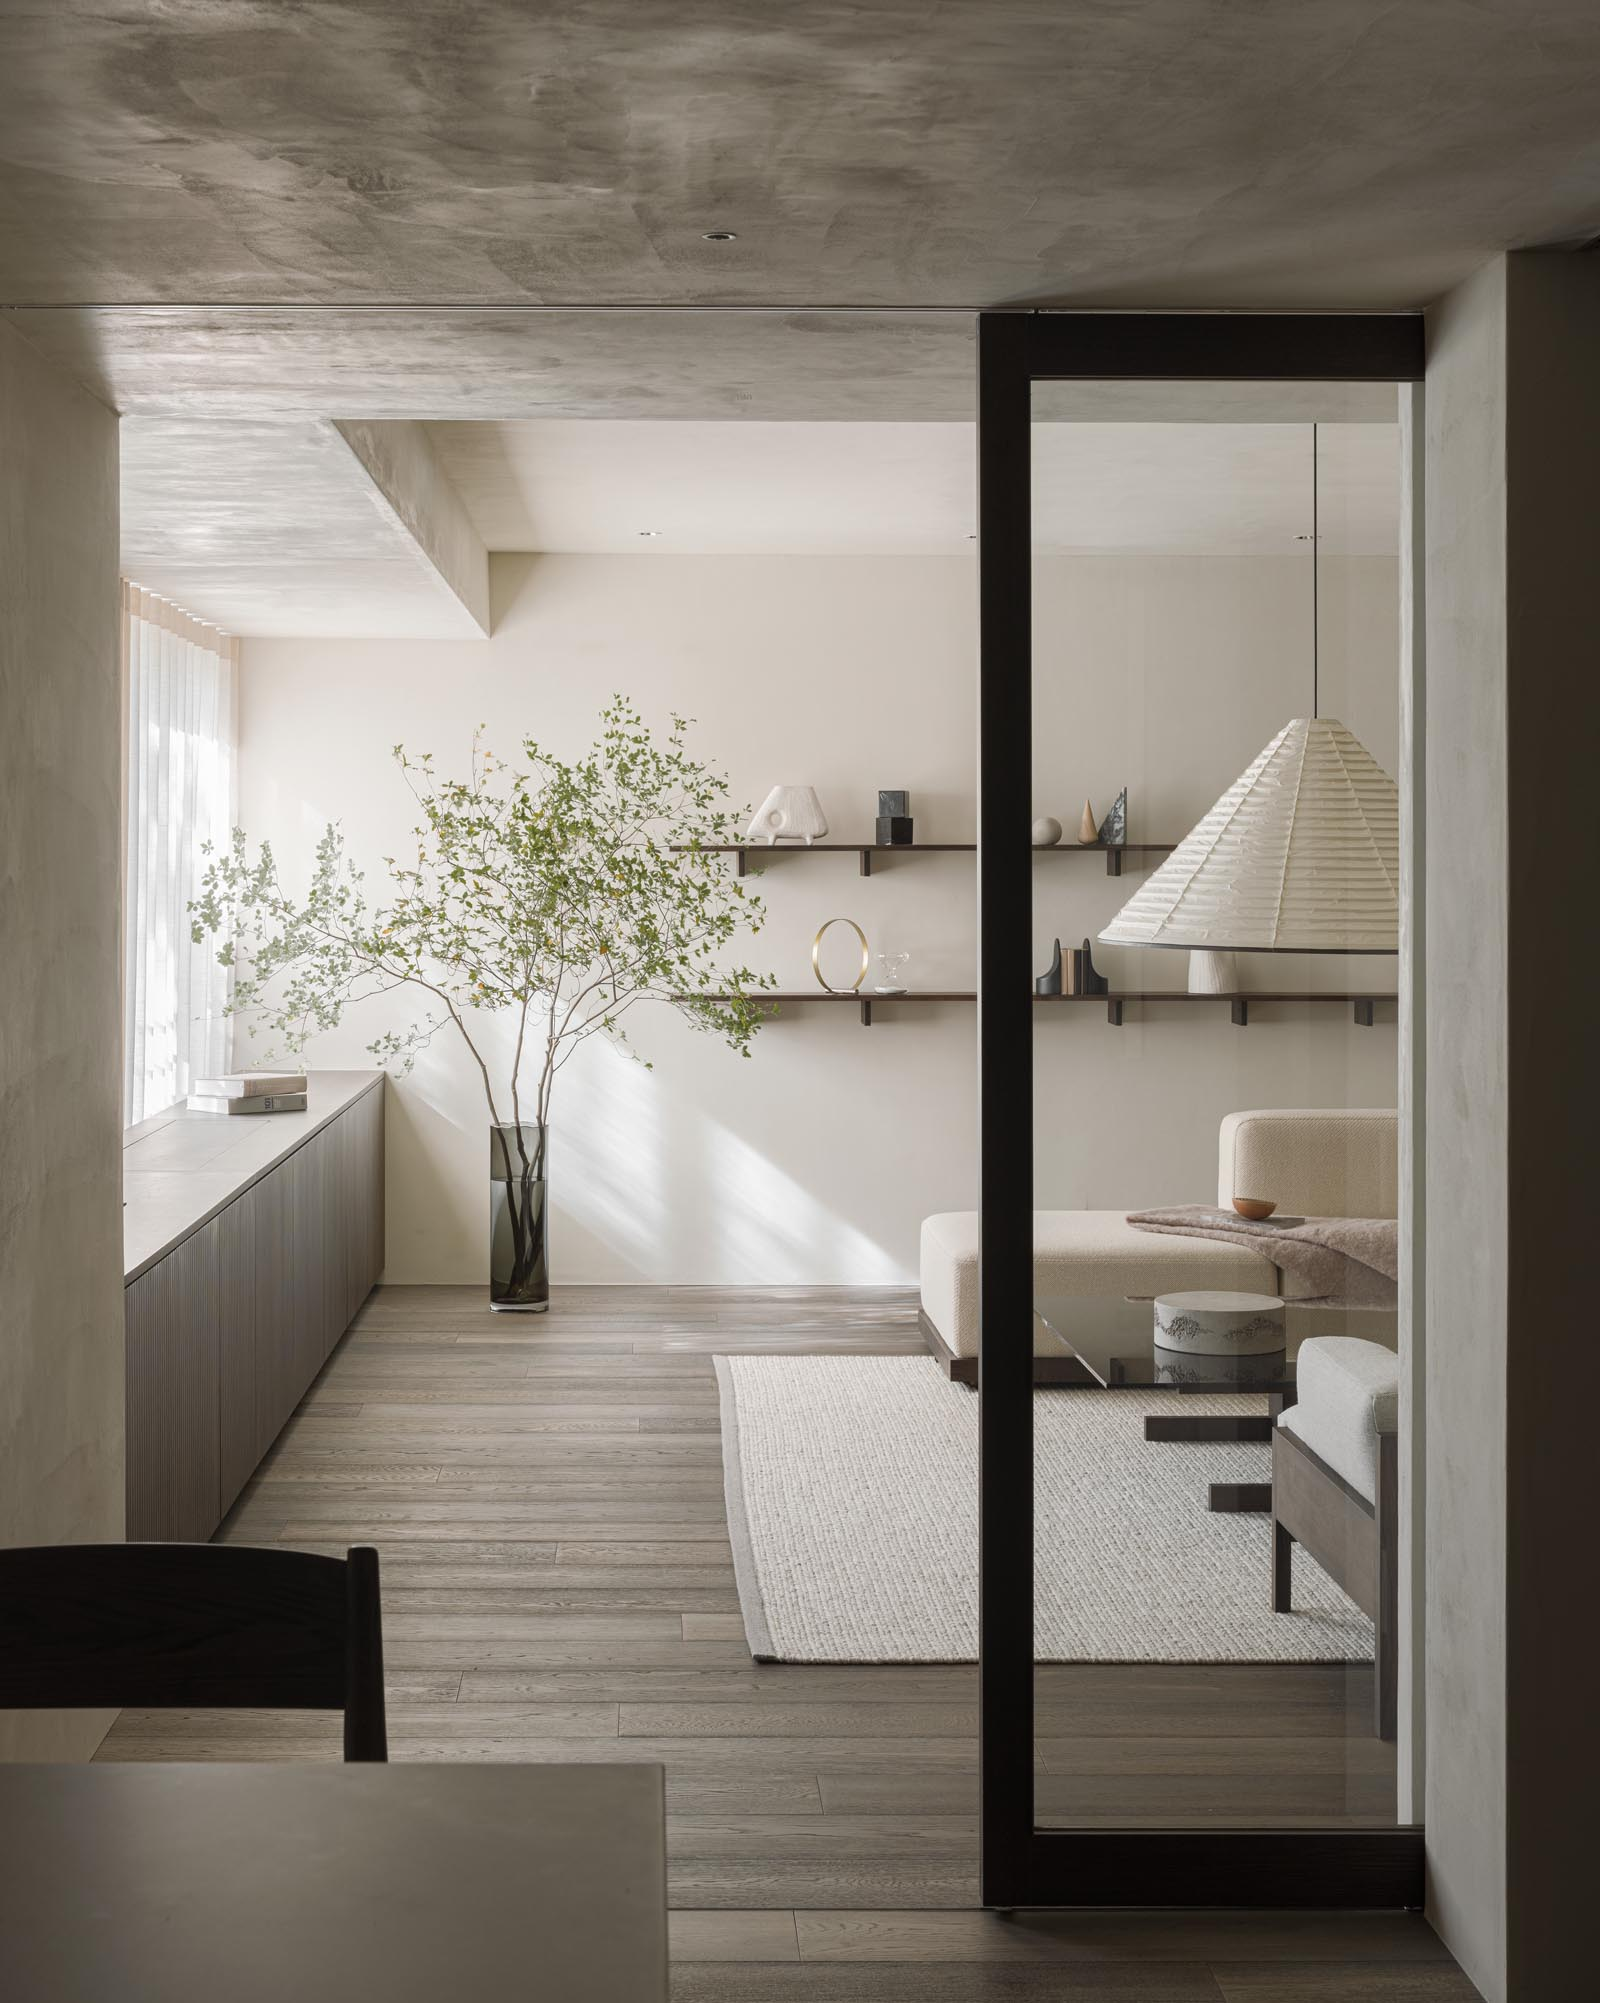 Home tour - a minimalist Tokyo apartment with dark, earthy tones, natural materials and Japandi design | These Four Walls blog